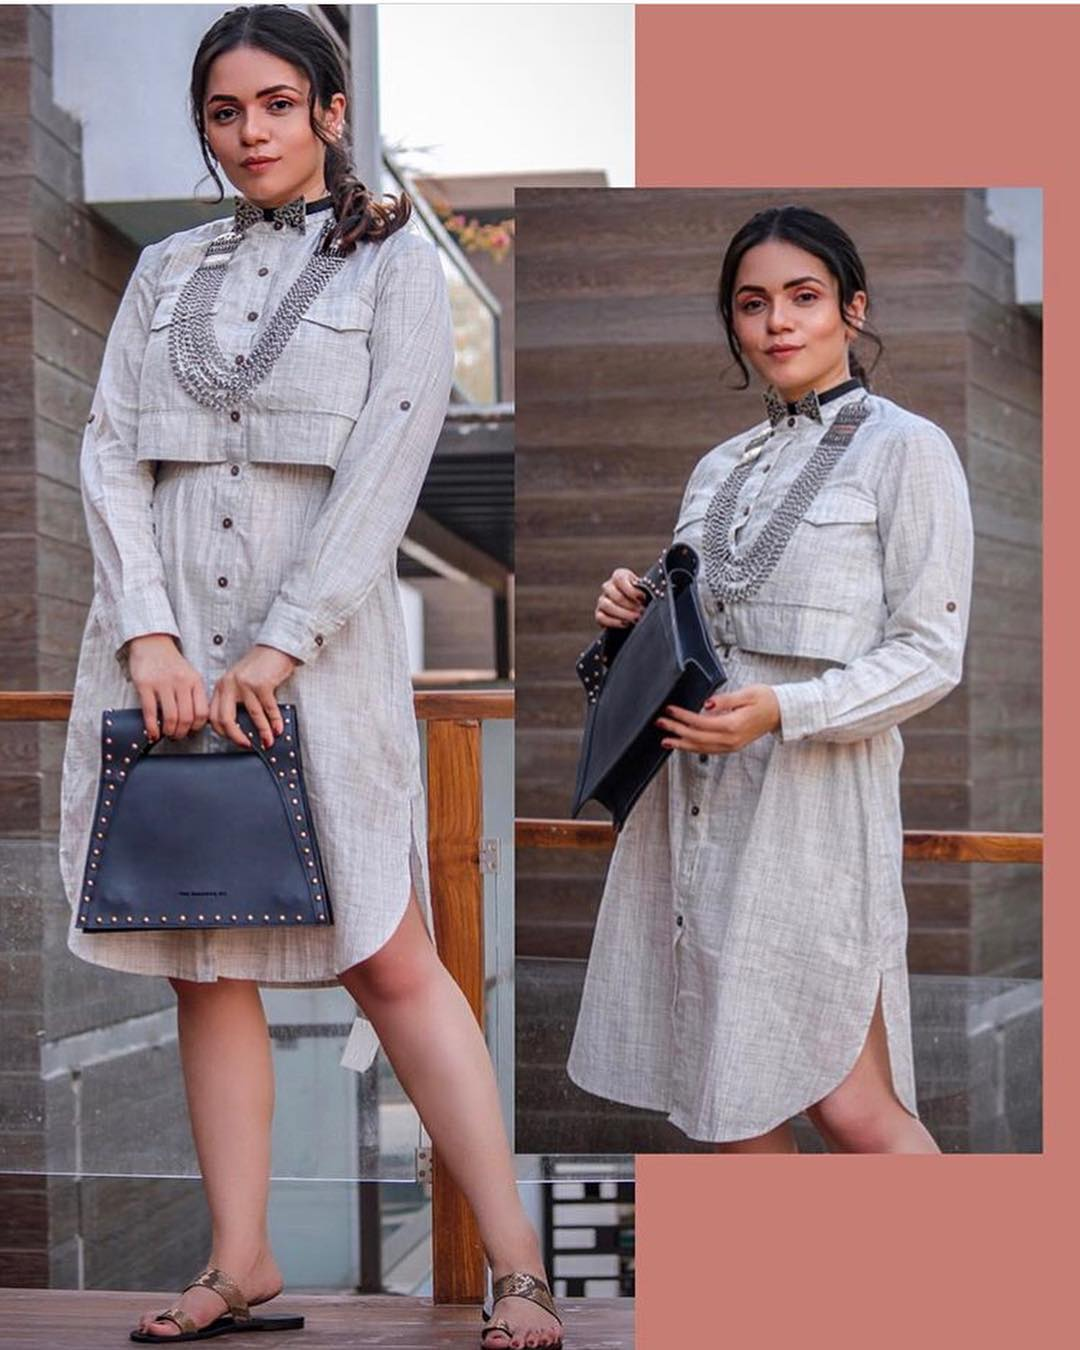 @heenasomani X @weekendwindow  Edgy Fashion state of mind! 🌈 .  A look styled by @heenasomani from brands picked from the handpicked curation of 15th Edition of Weekend Window!  Shop this look and flaunt your #WeekendWindowShoppingHaul and #WeekendWindowLooks with us! ✨  Today & Tomorrow, 4pm onwards!  #weekendwindow #fleastival #fashionweekend #fashion #food #fun #summerweekend #donotmiss